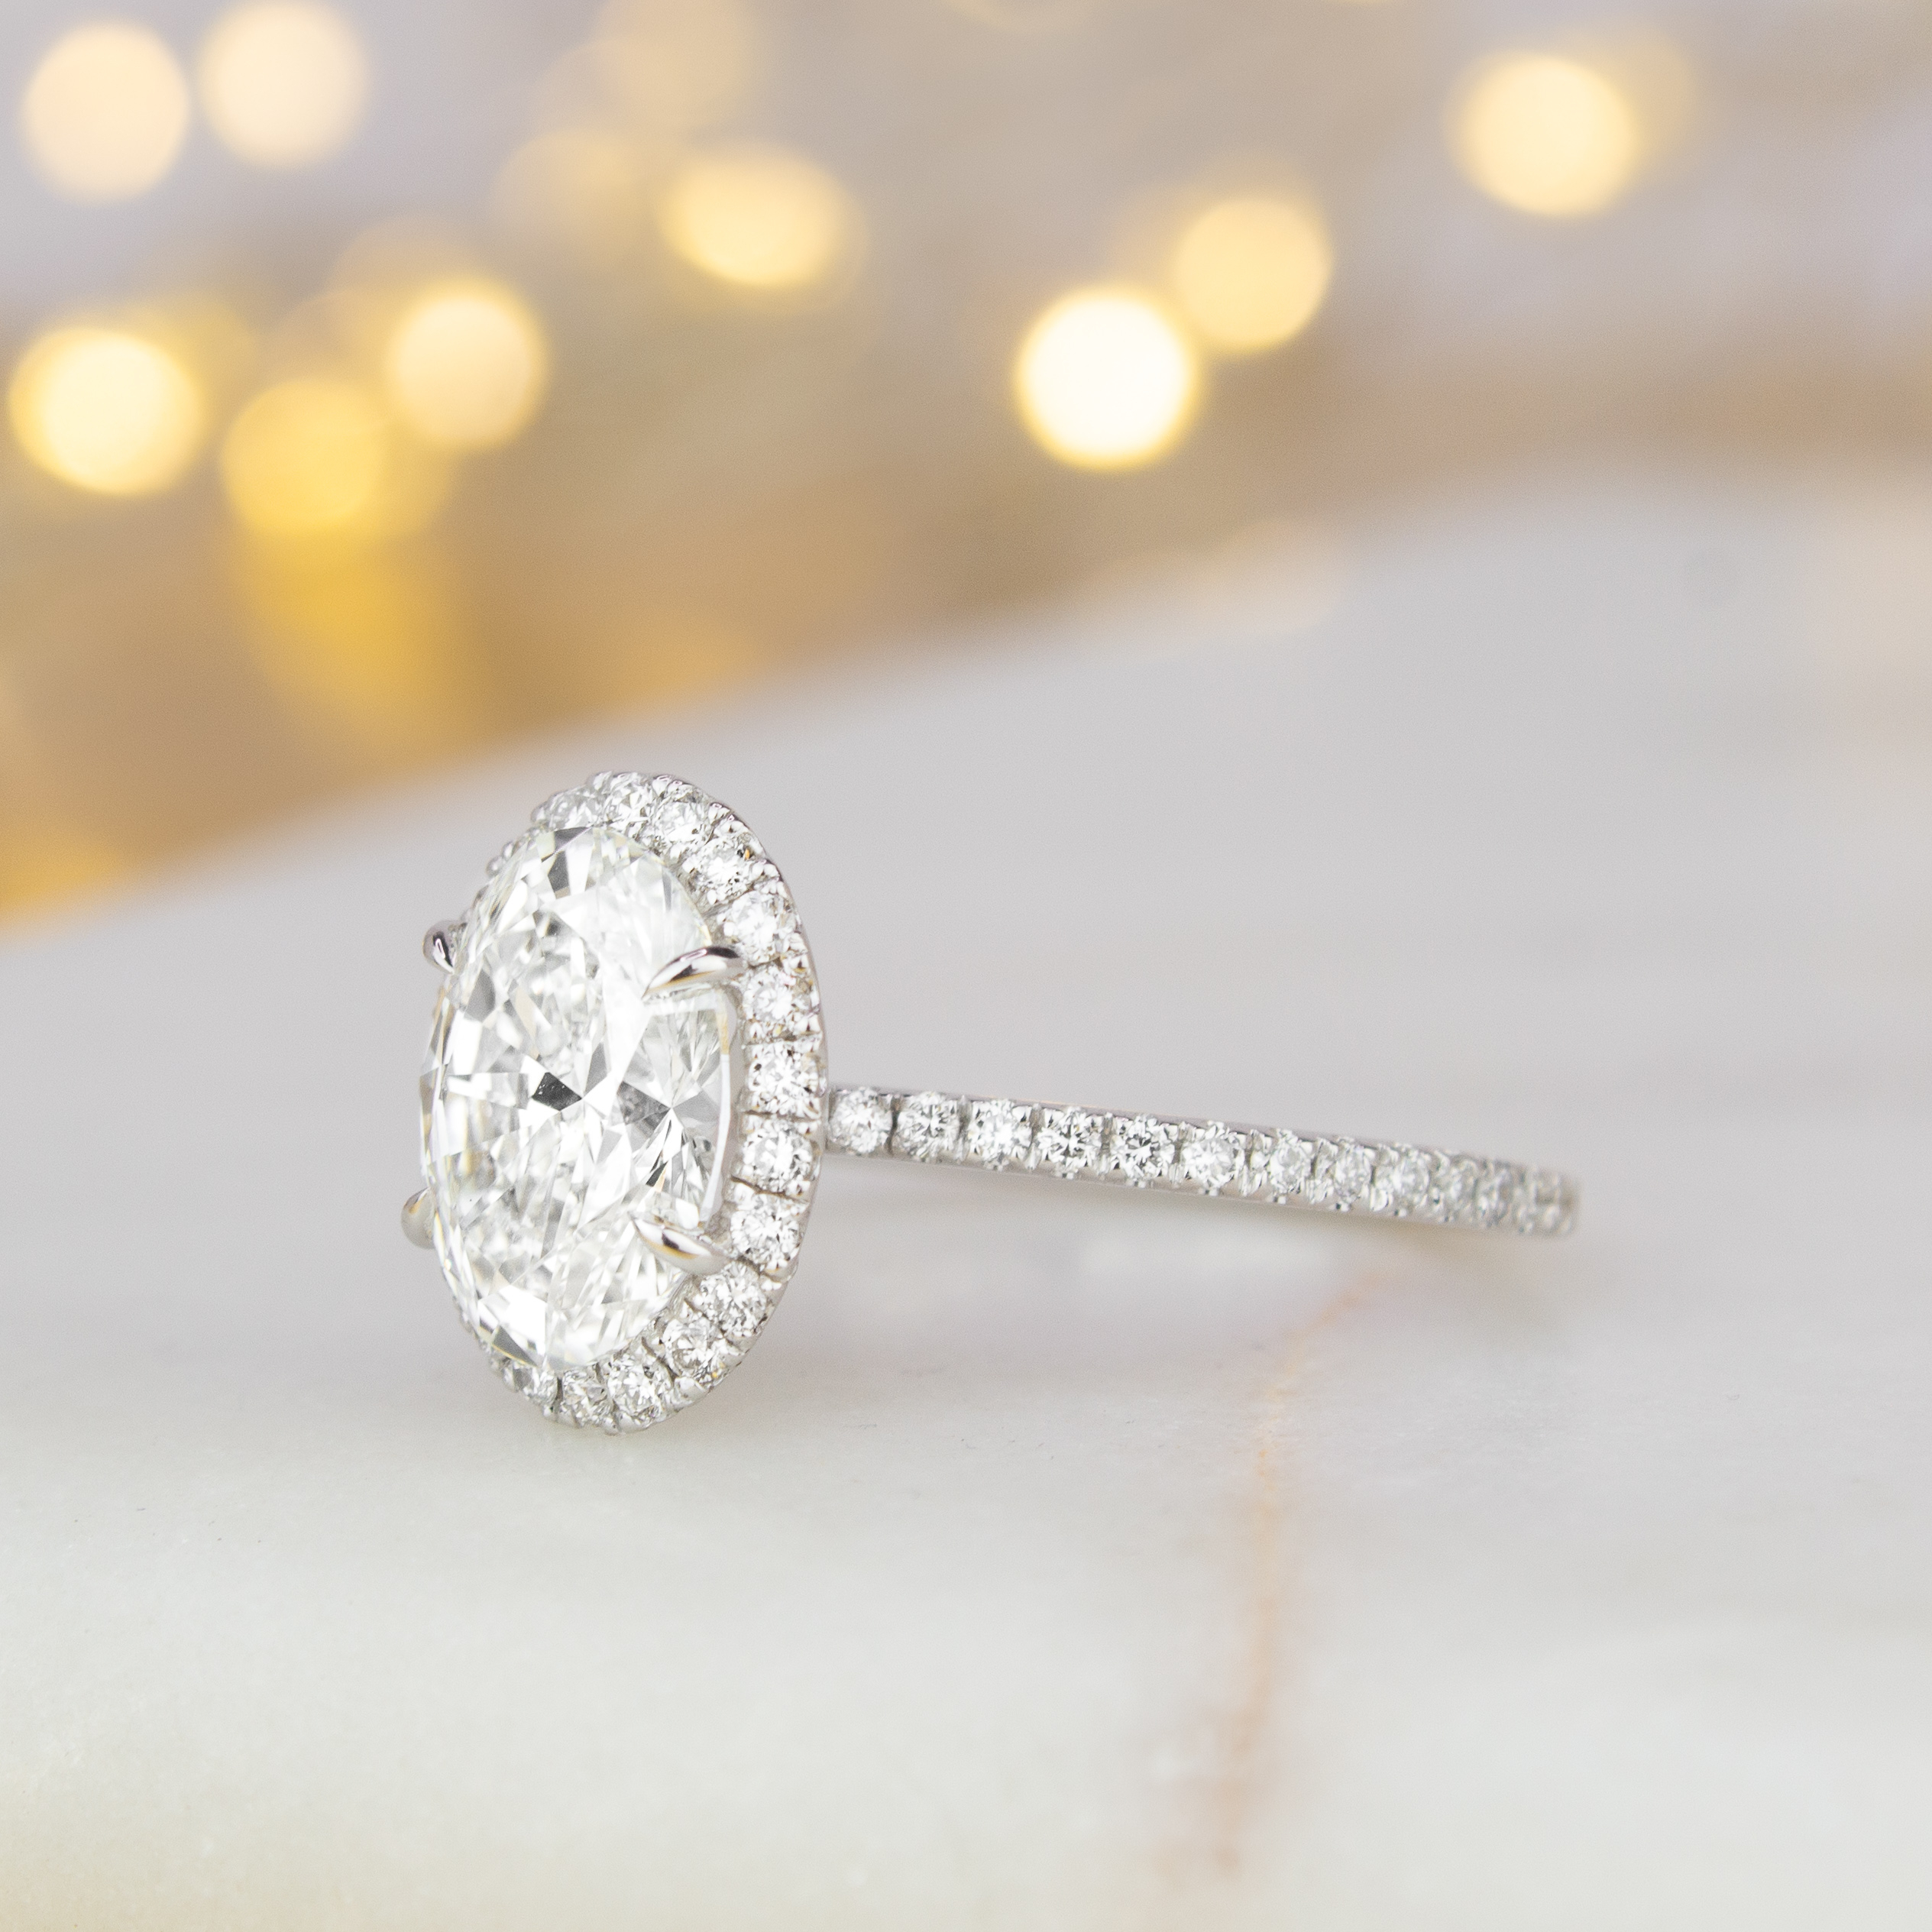 Sparkling Pavé Engagement Rings | Brilliant Earth Inside Most Recently Released Sparkling Pavé Band Rings (Gallery 4 of 25)